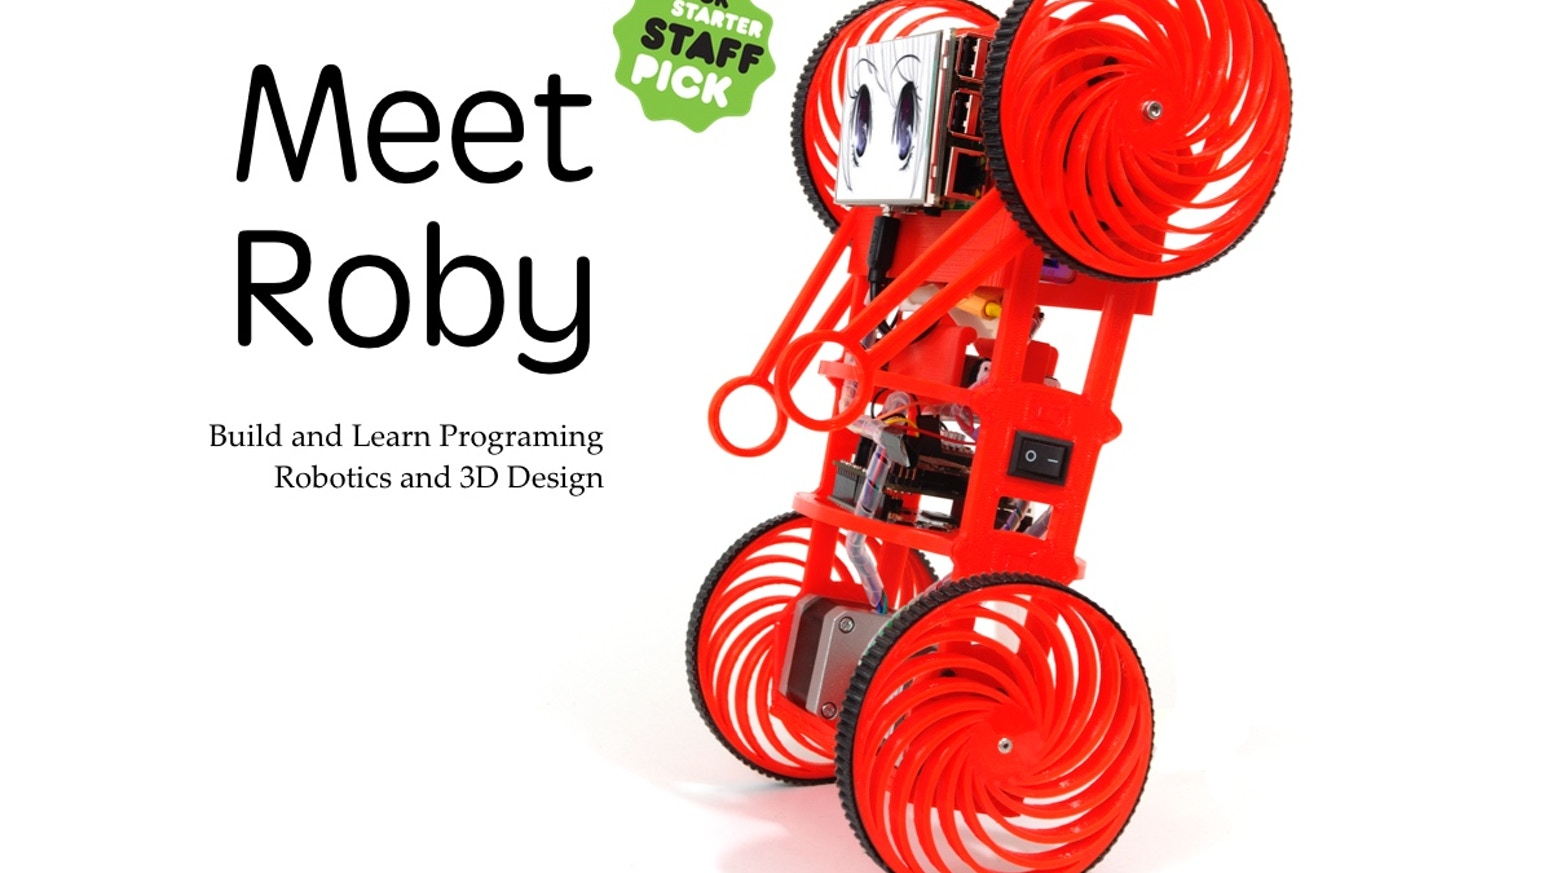 Missed the Campaign? Pre-Order to Build your own customized balancing robot and gain first hand experience in Programming, Robotics, and 3D Design.